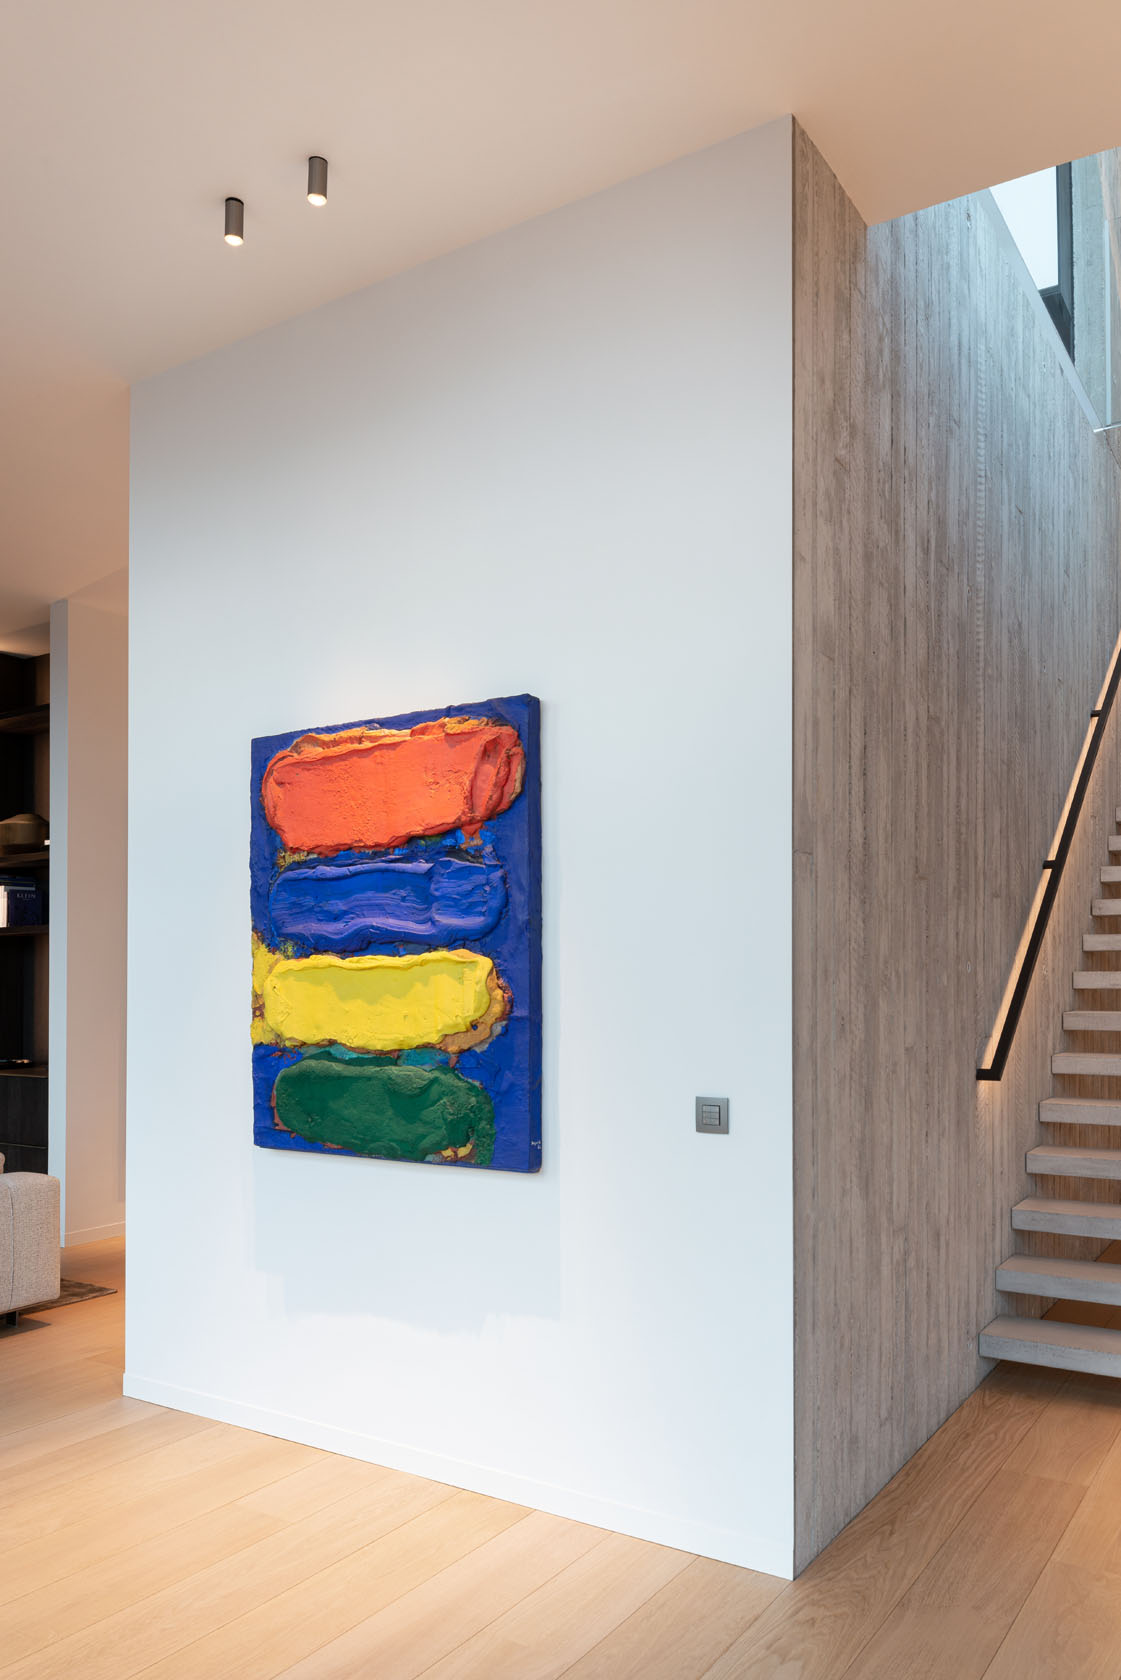 Loft, Antwerp (BE) image 1